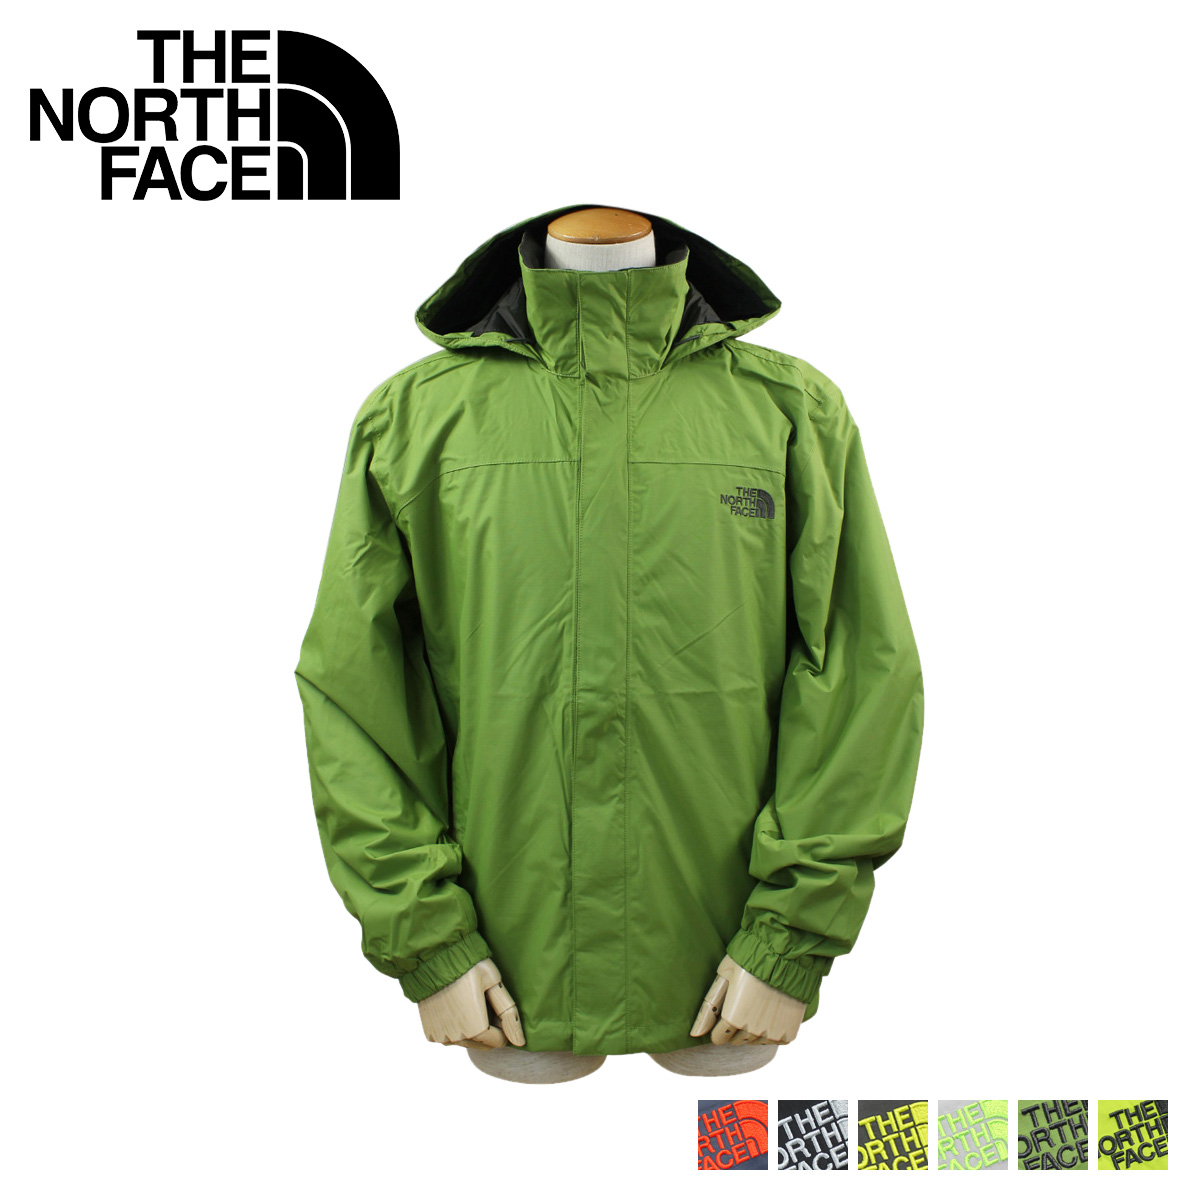 ecf56b875 new style the north face hyvent resolve jacket north face 1c6d6 4a807